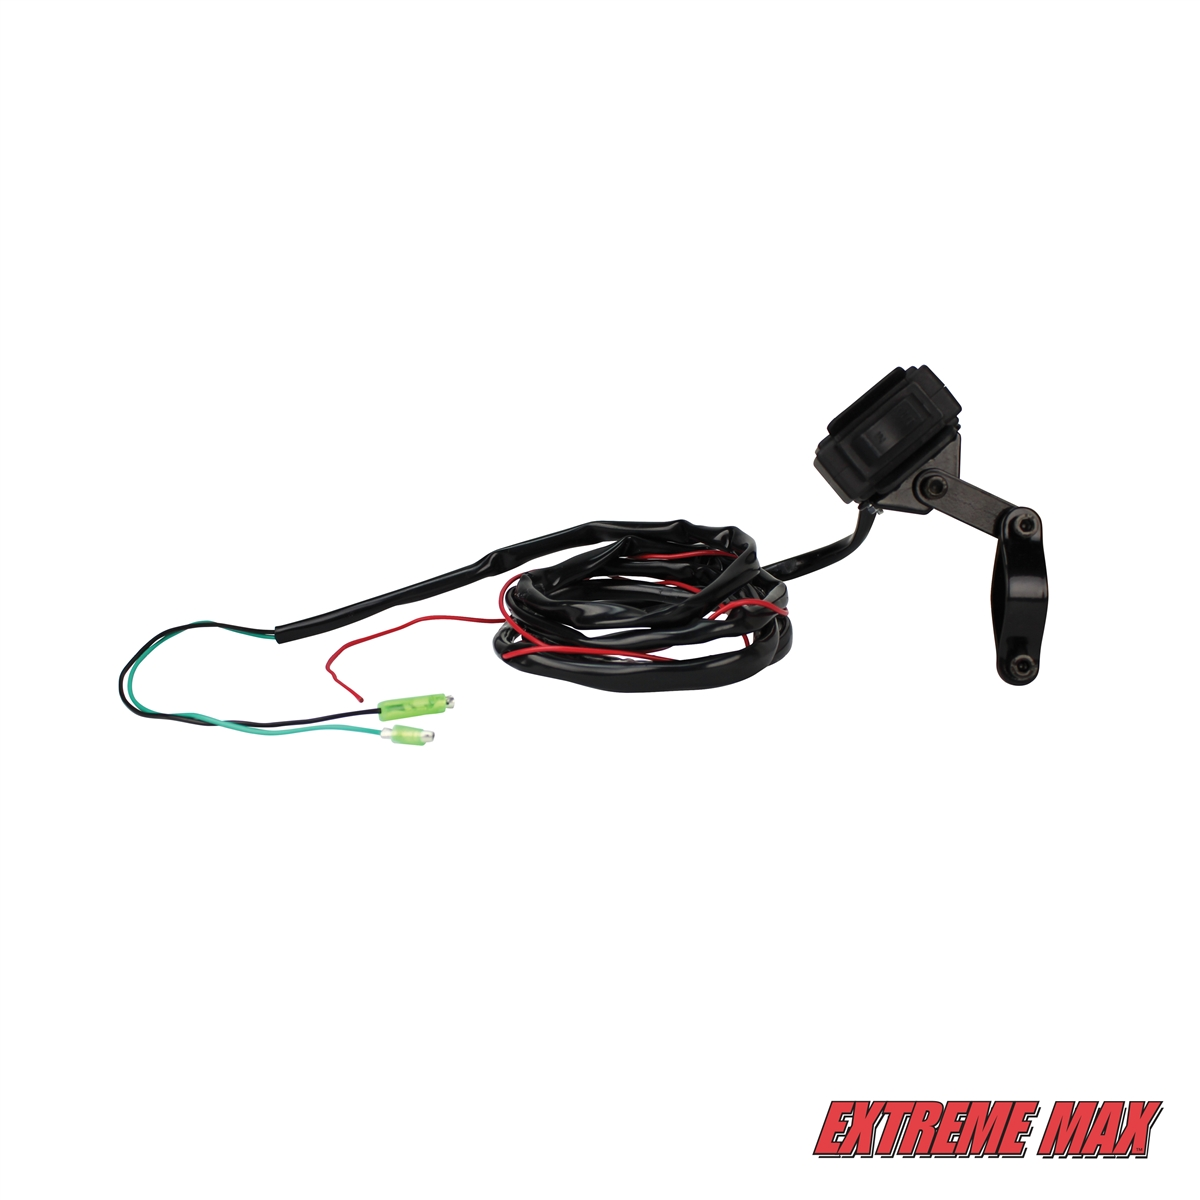 Extreme Max Universal Waterproof Atv Winch